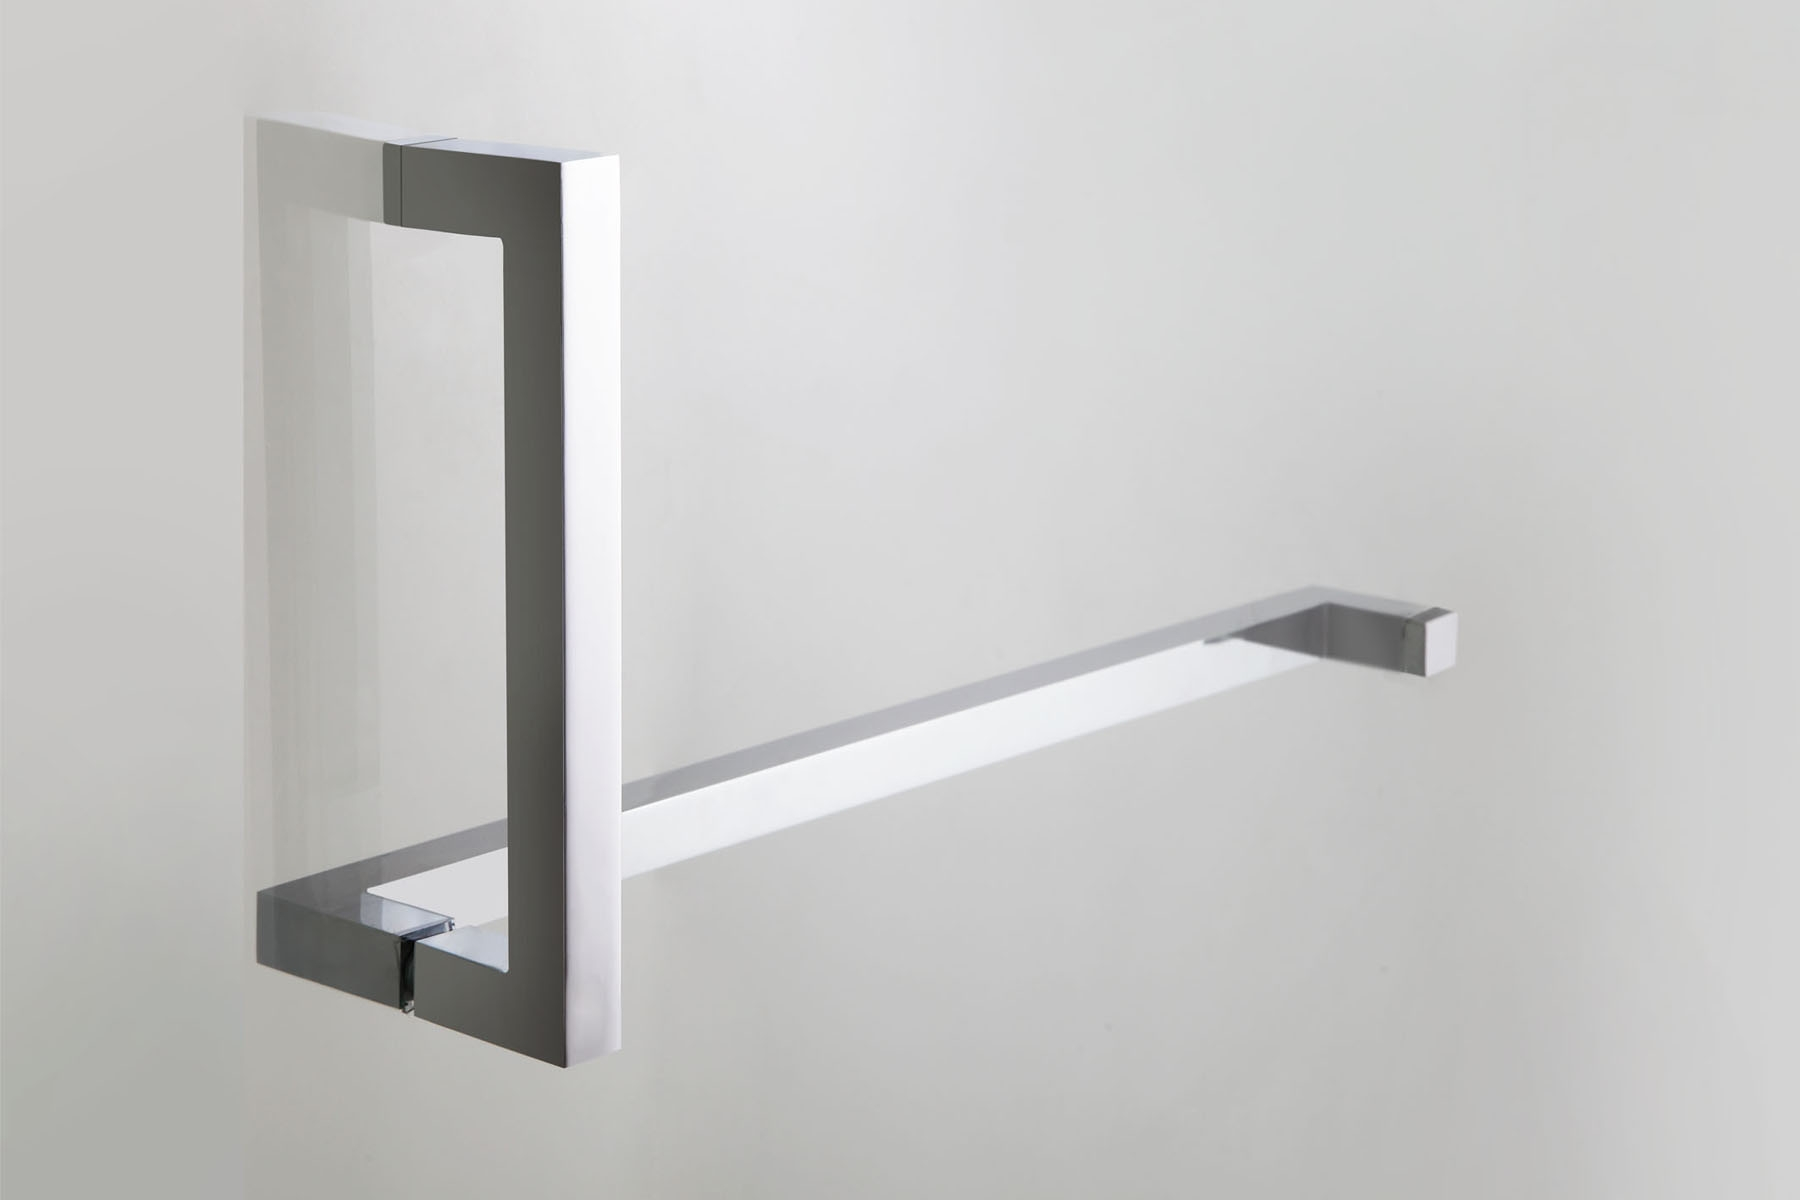 Glass Bathroom Door Handles